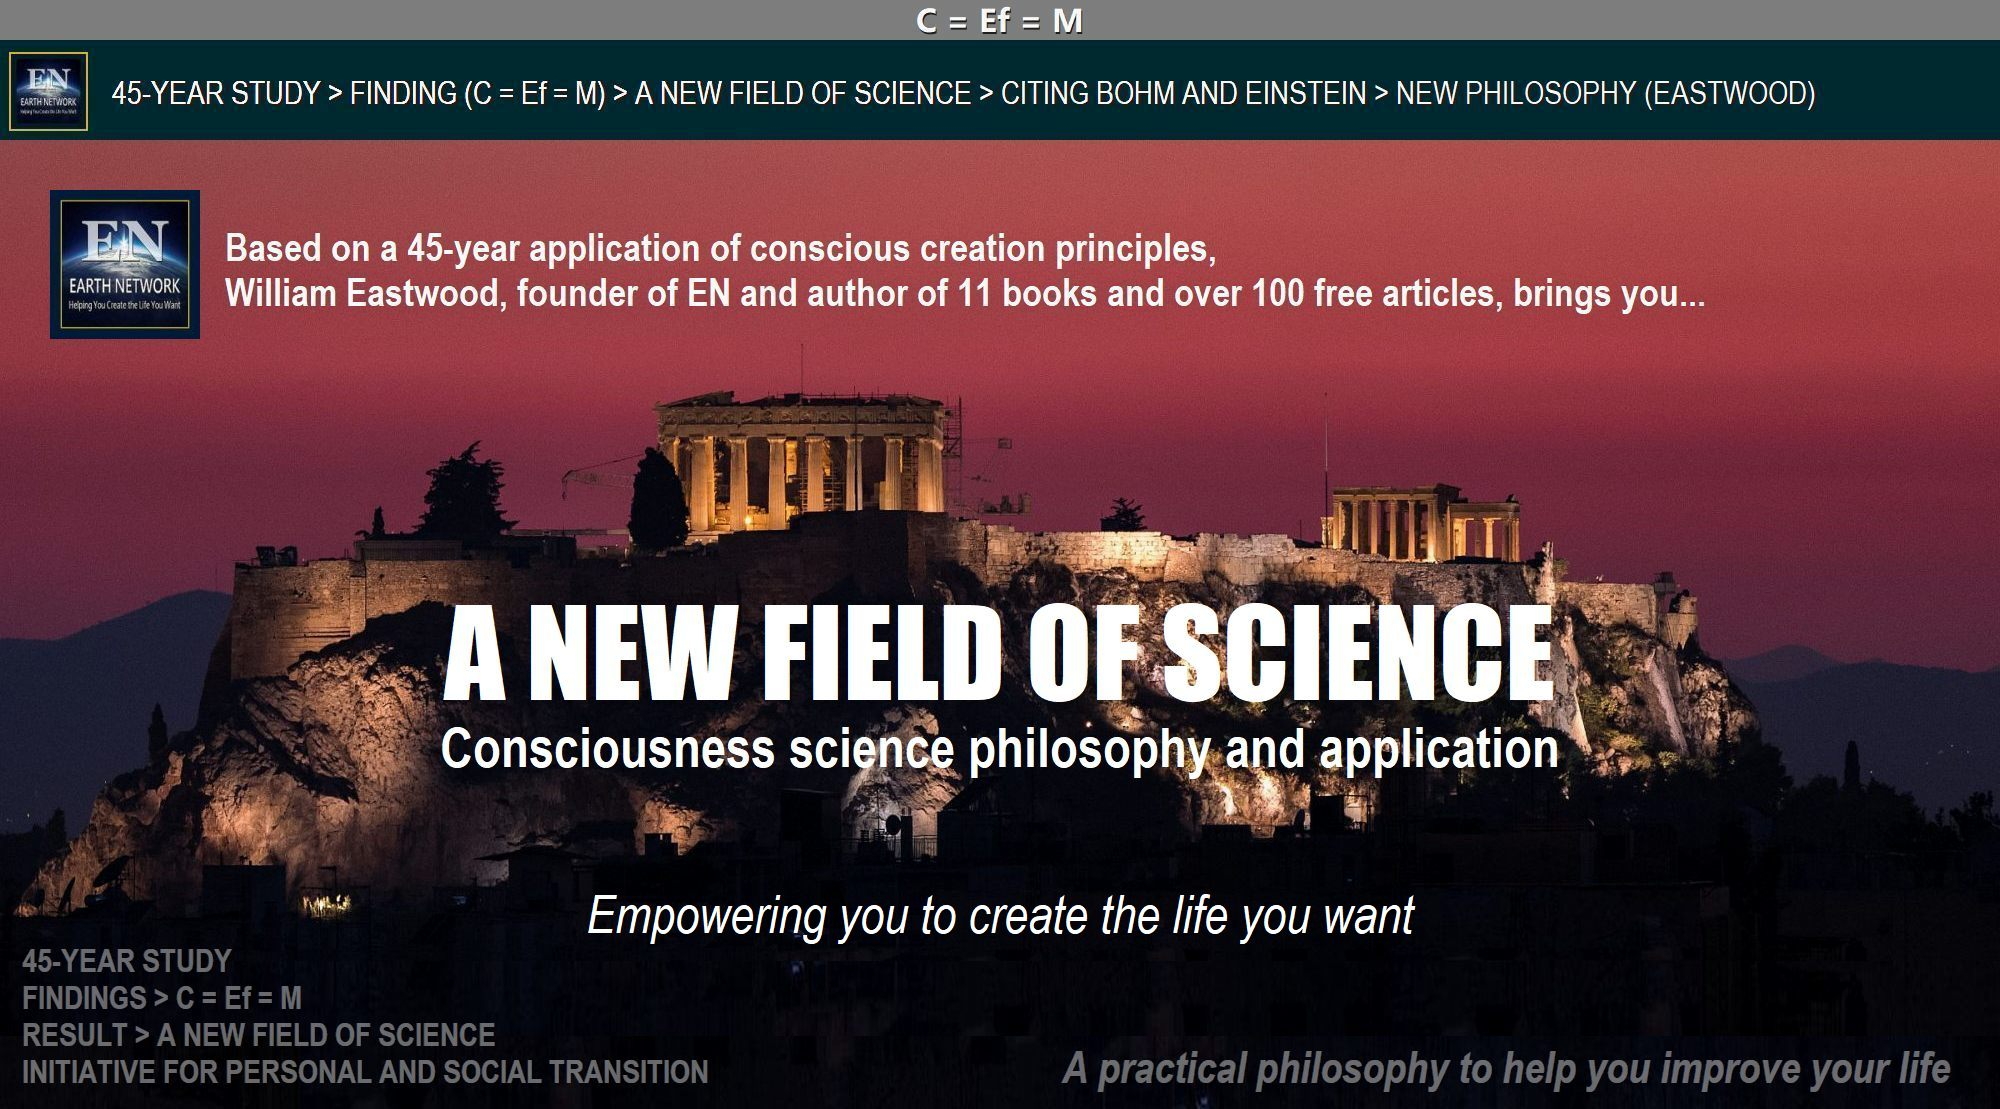 Greek Parthenon represents A NEW FIELD OF SCIENCE: Consciousness Science Application and metaphysical philosophy